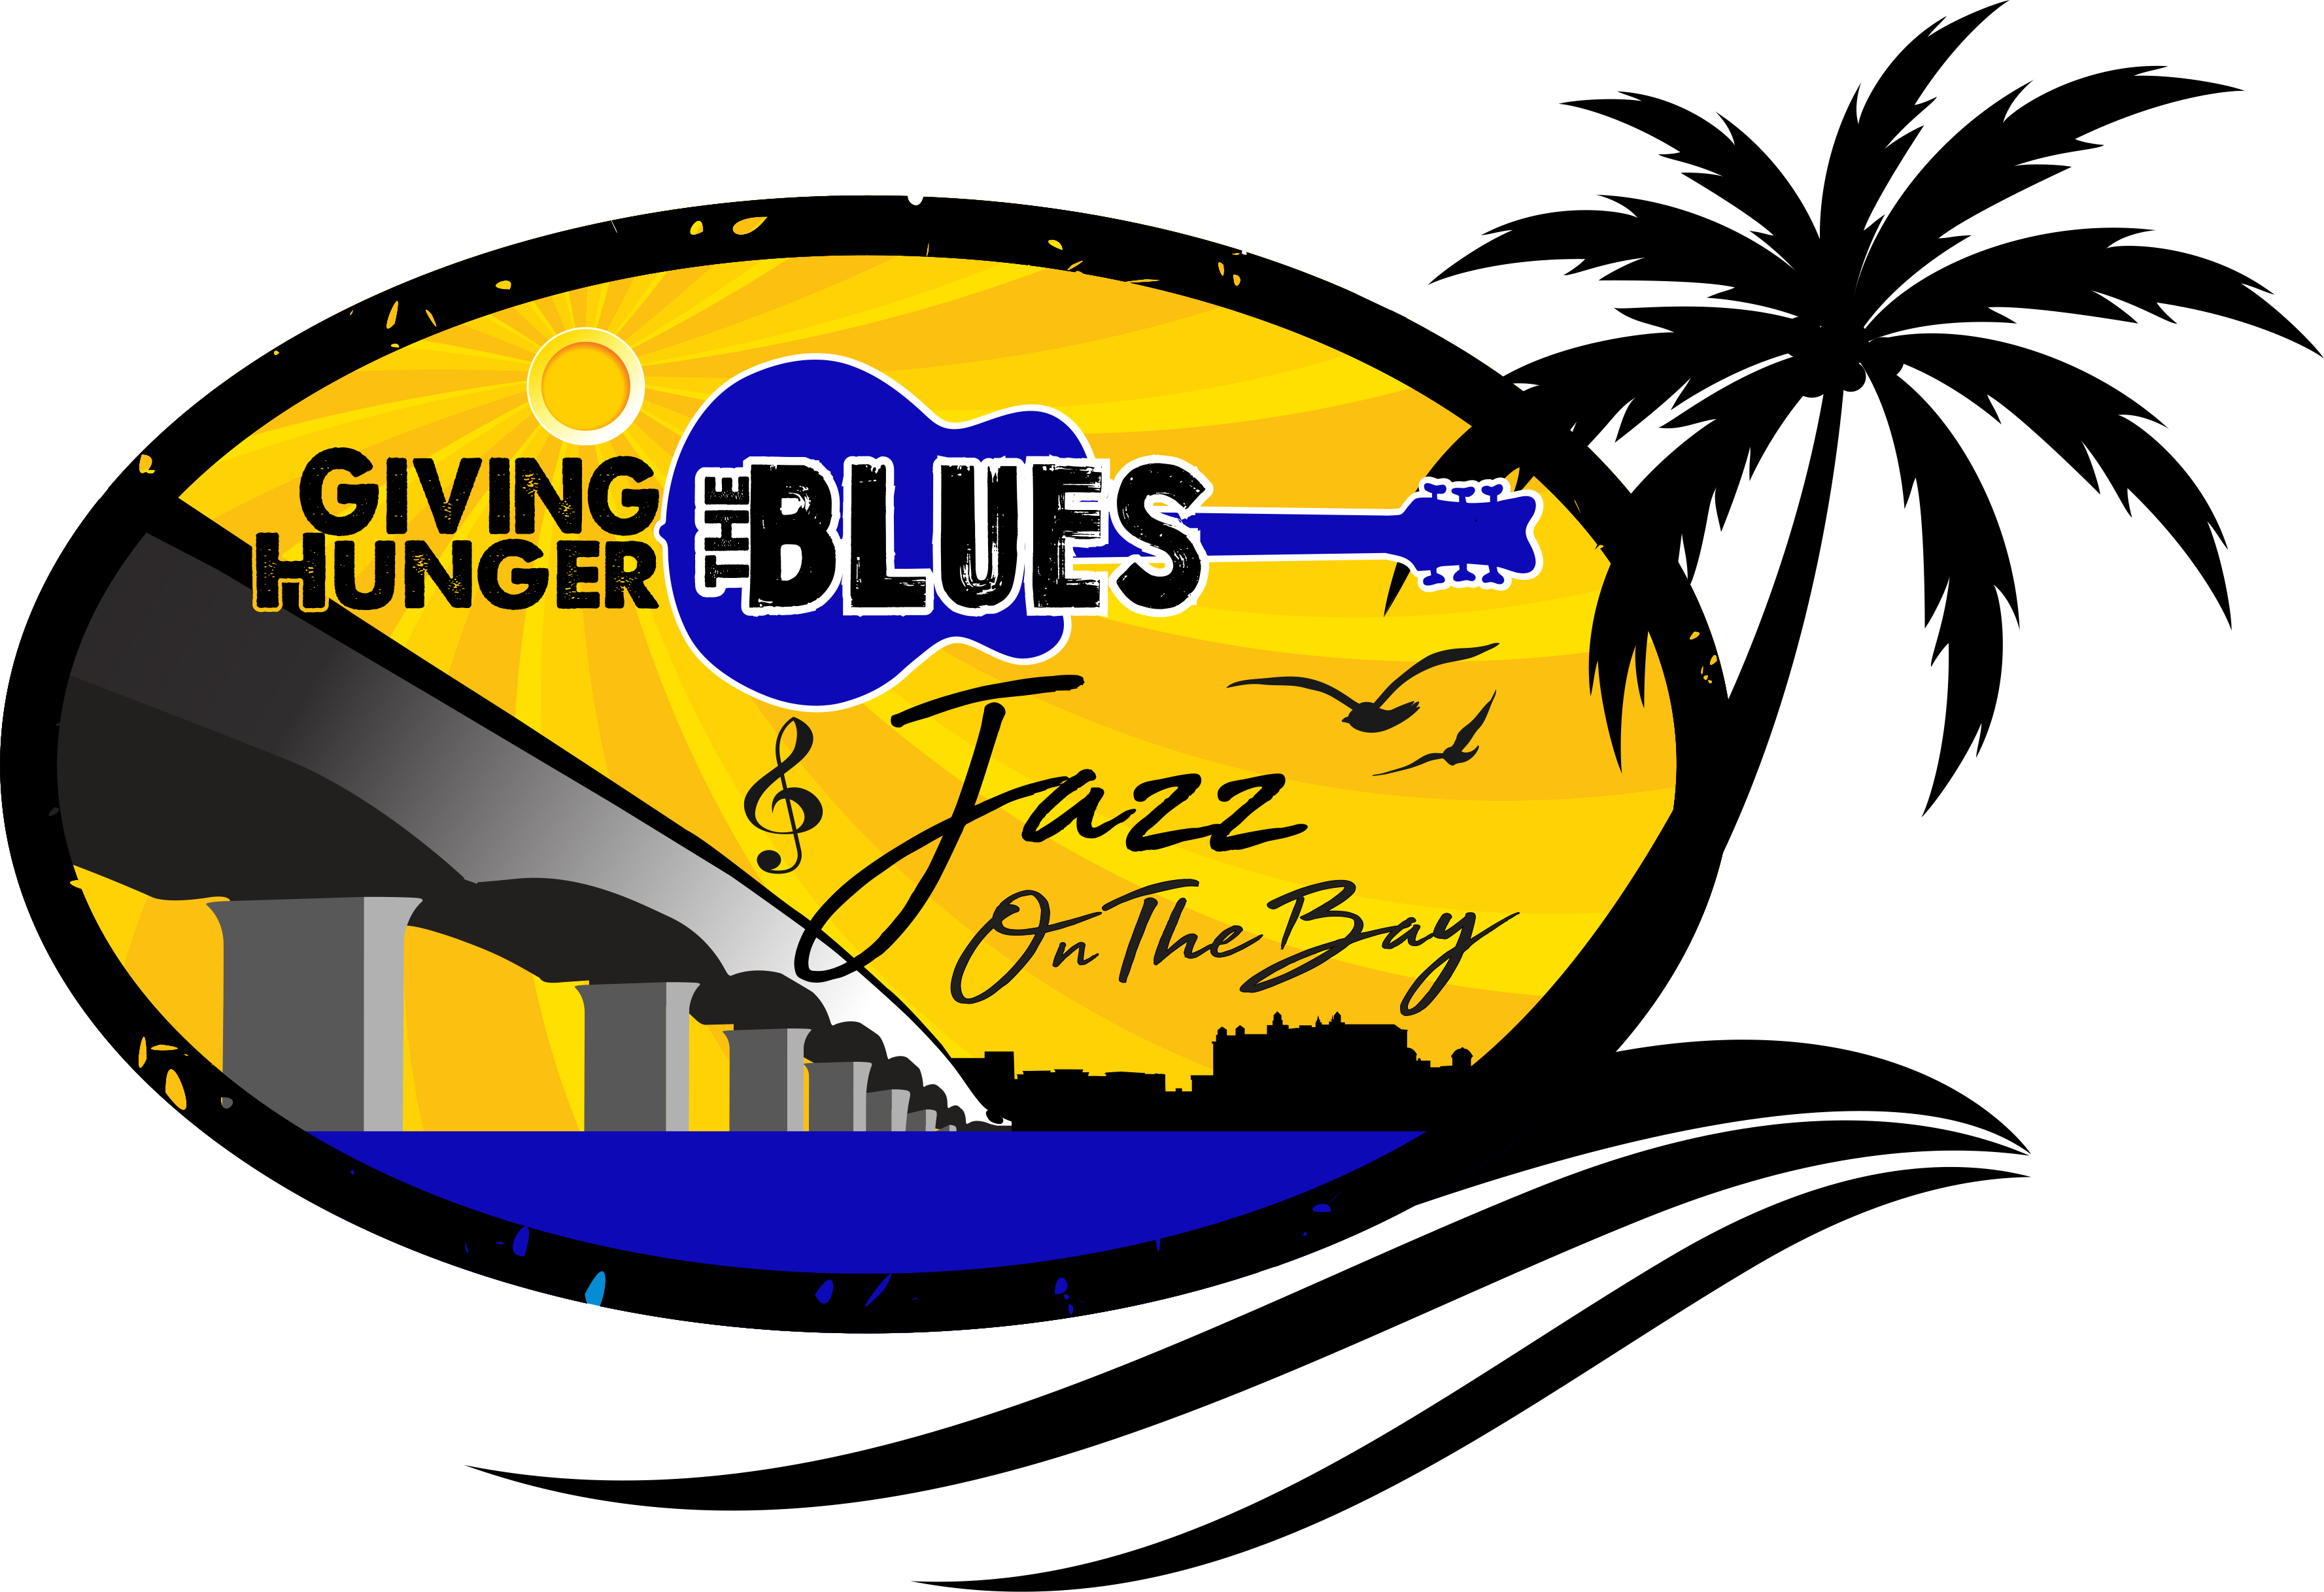 Giving hunger the blues. Jazz clipart jazz club